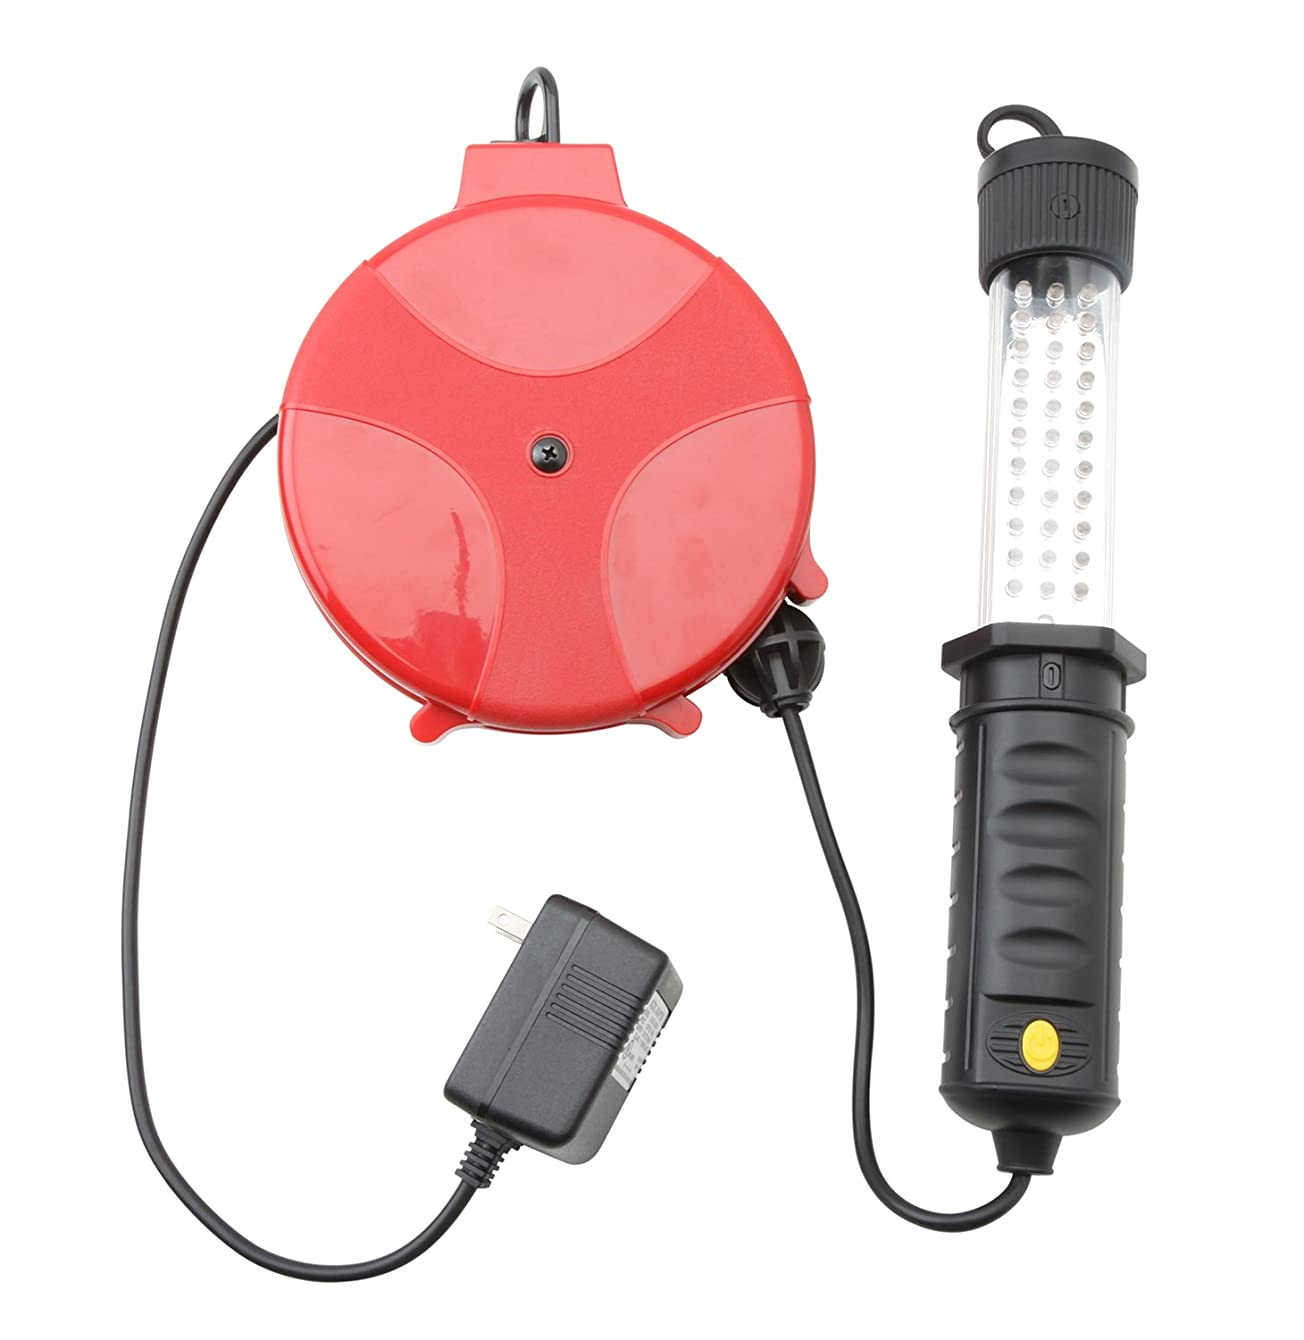 Woods 48066 33 LED Trouble Light with Retractable Cord Reel